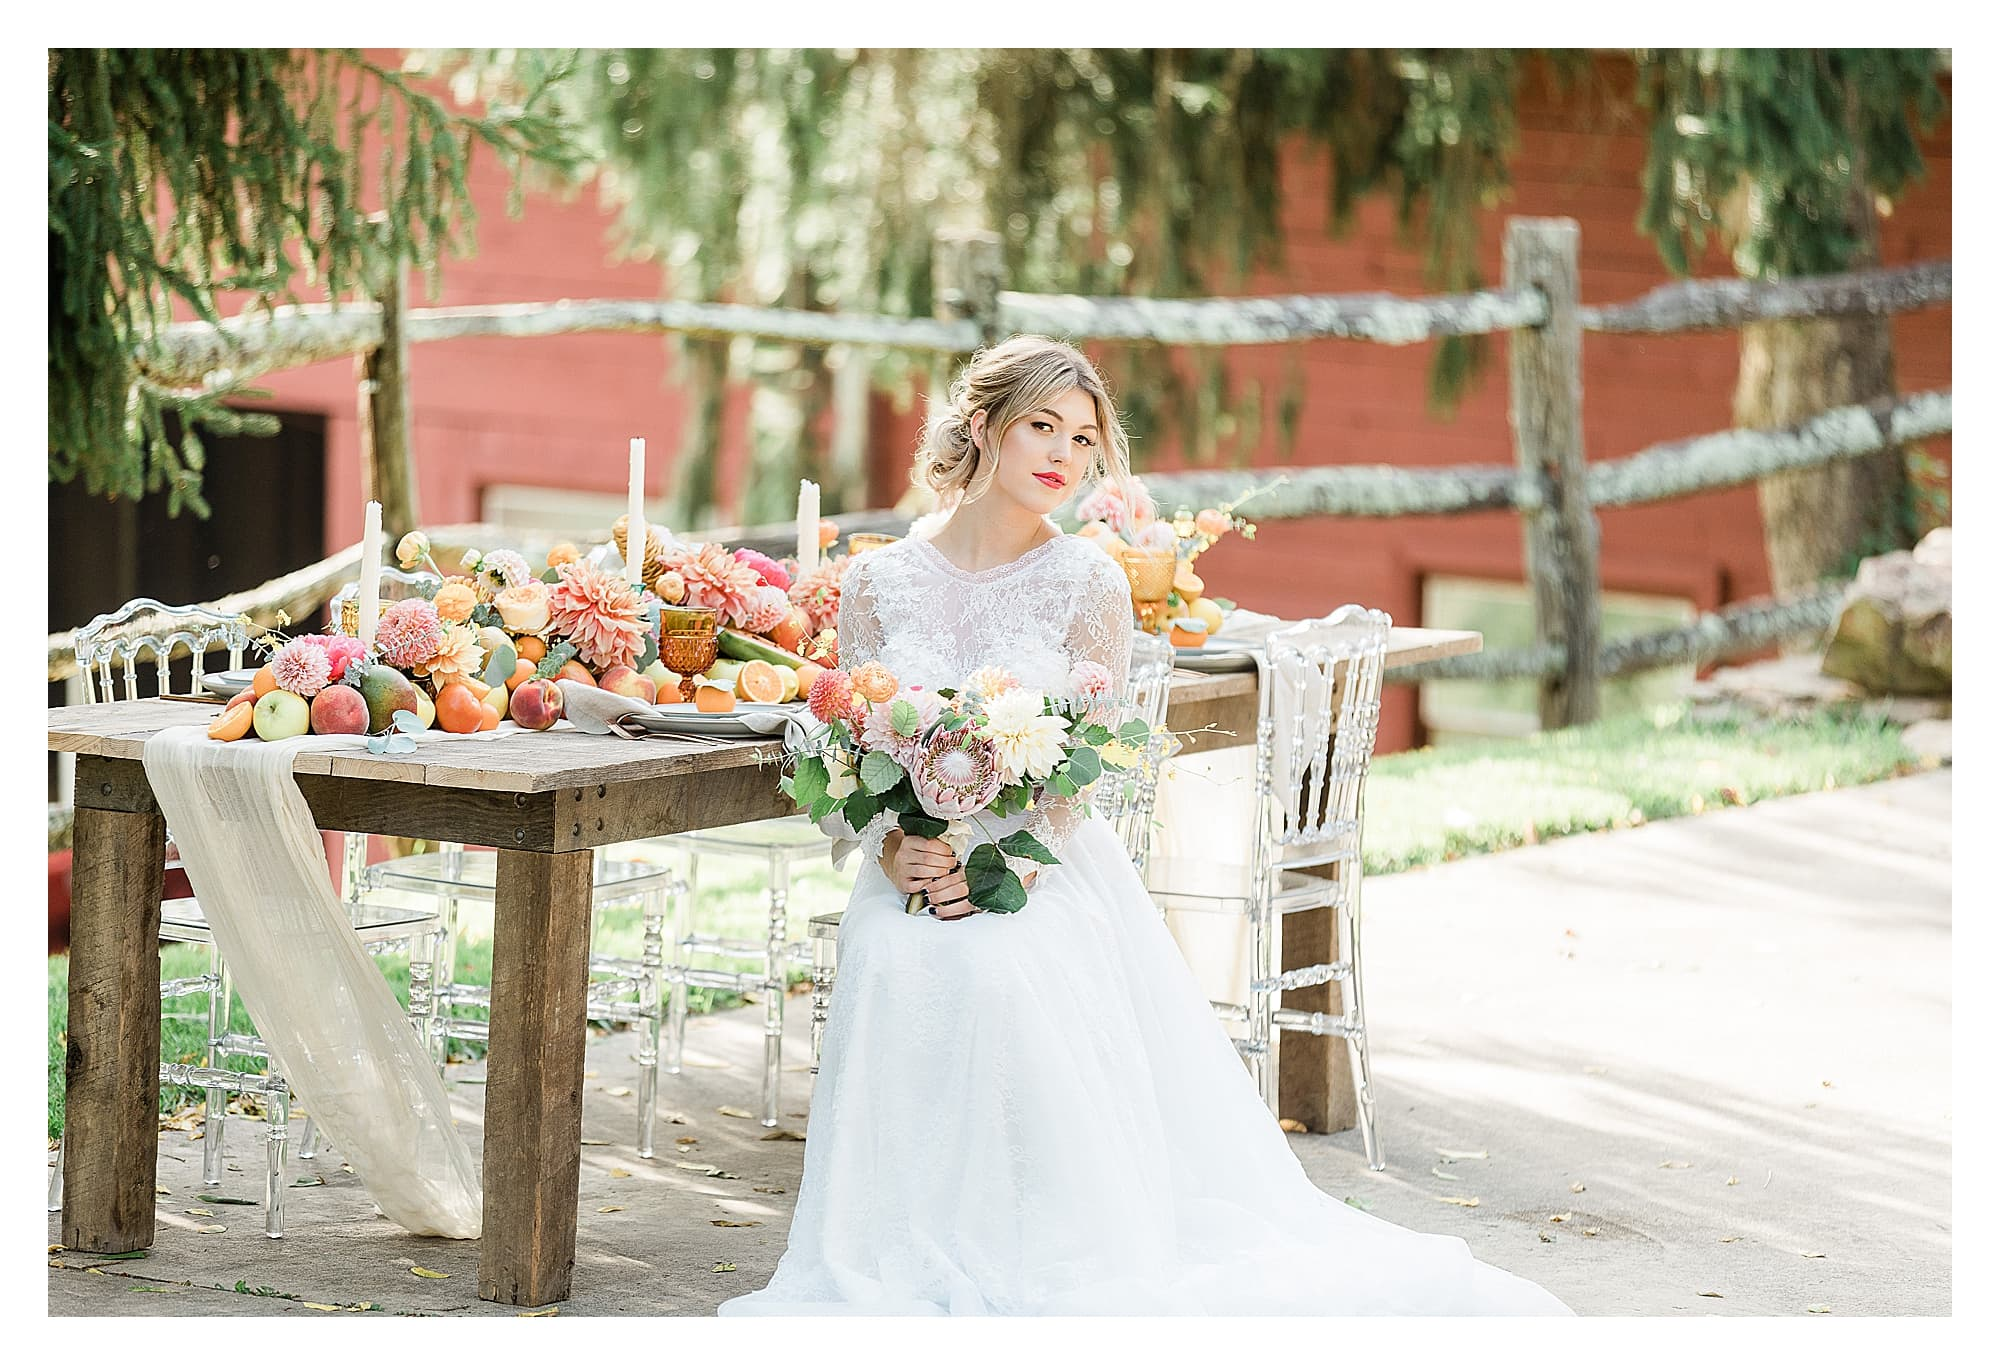 Bride wearing two piece white lace wedding dress holding peach, pink and yellow themed wedding bouquet